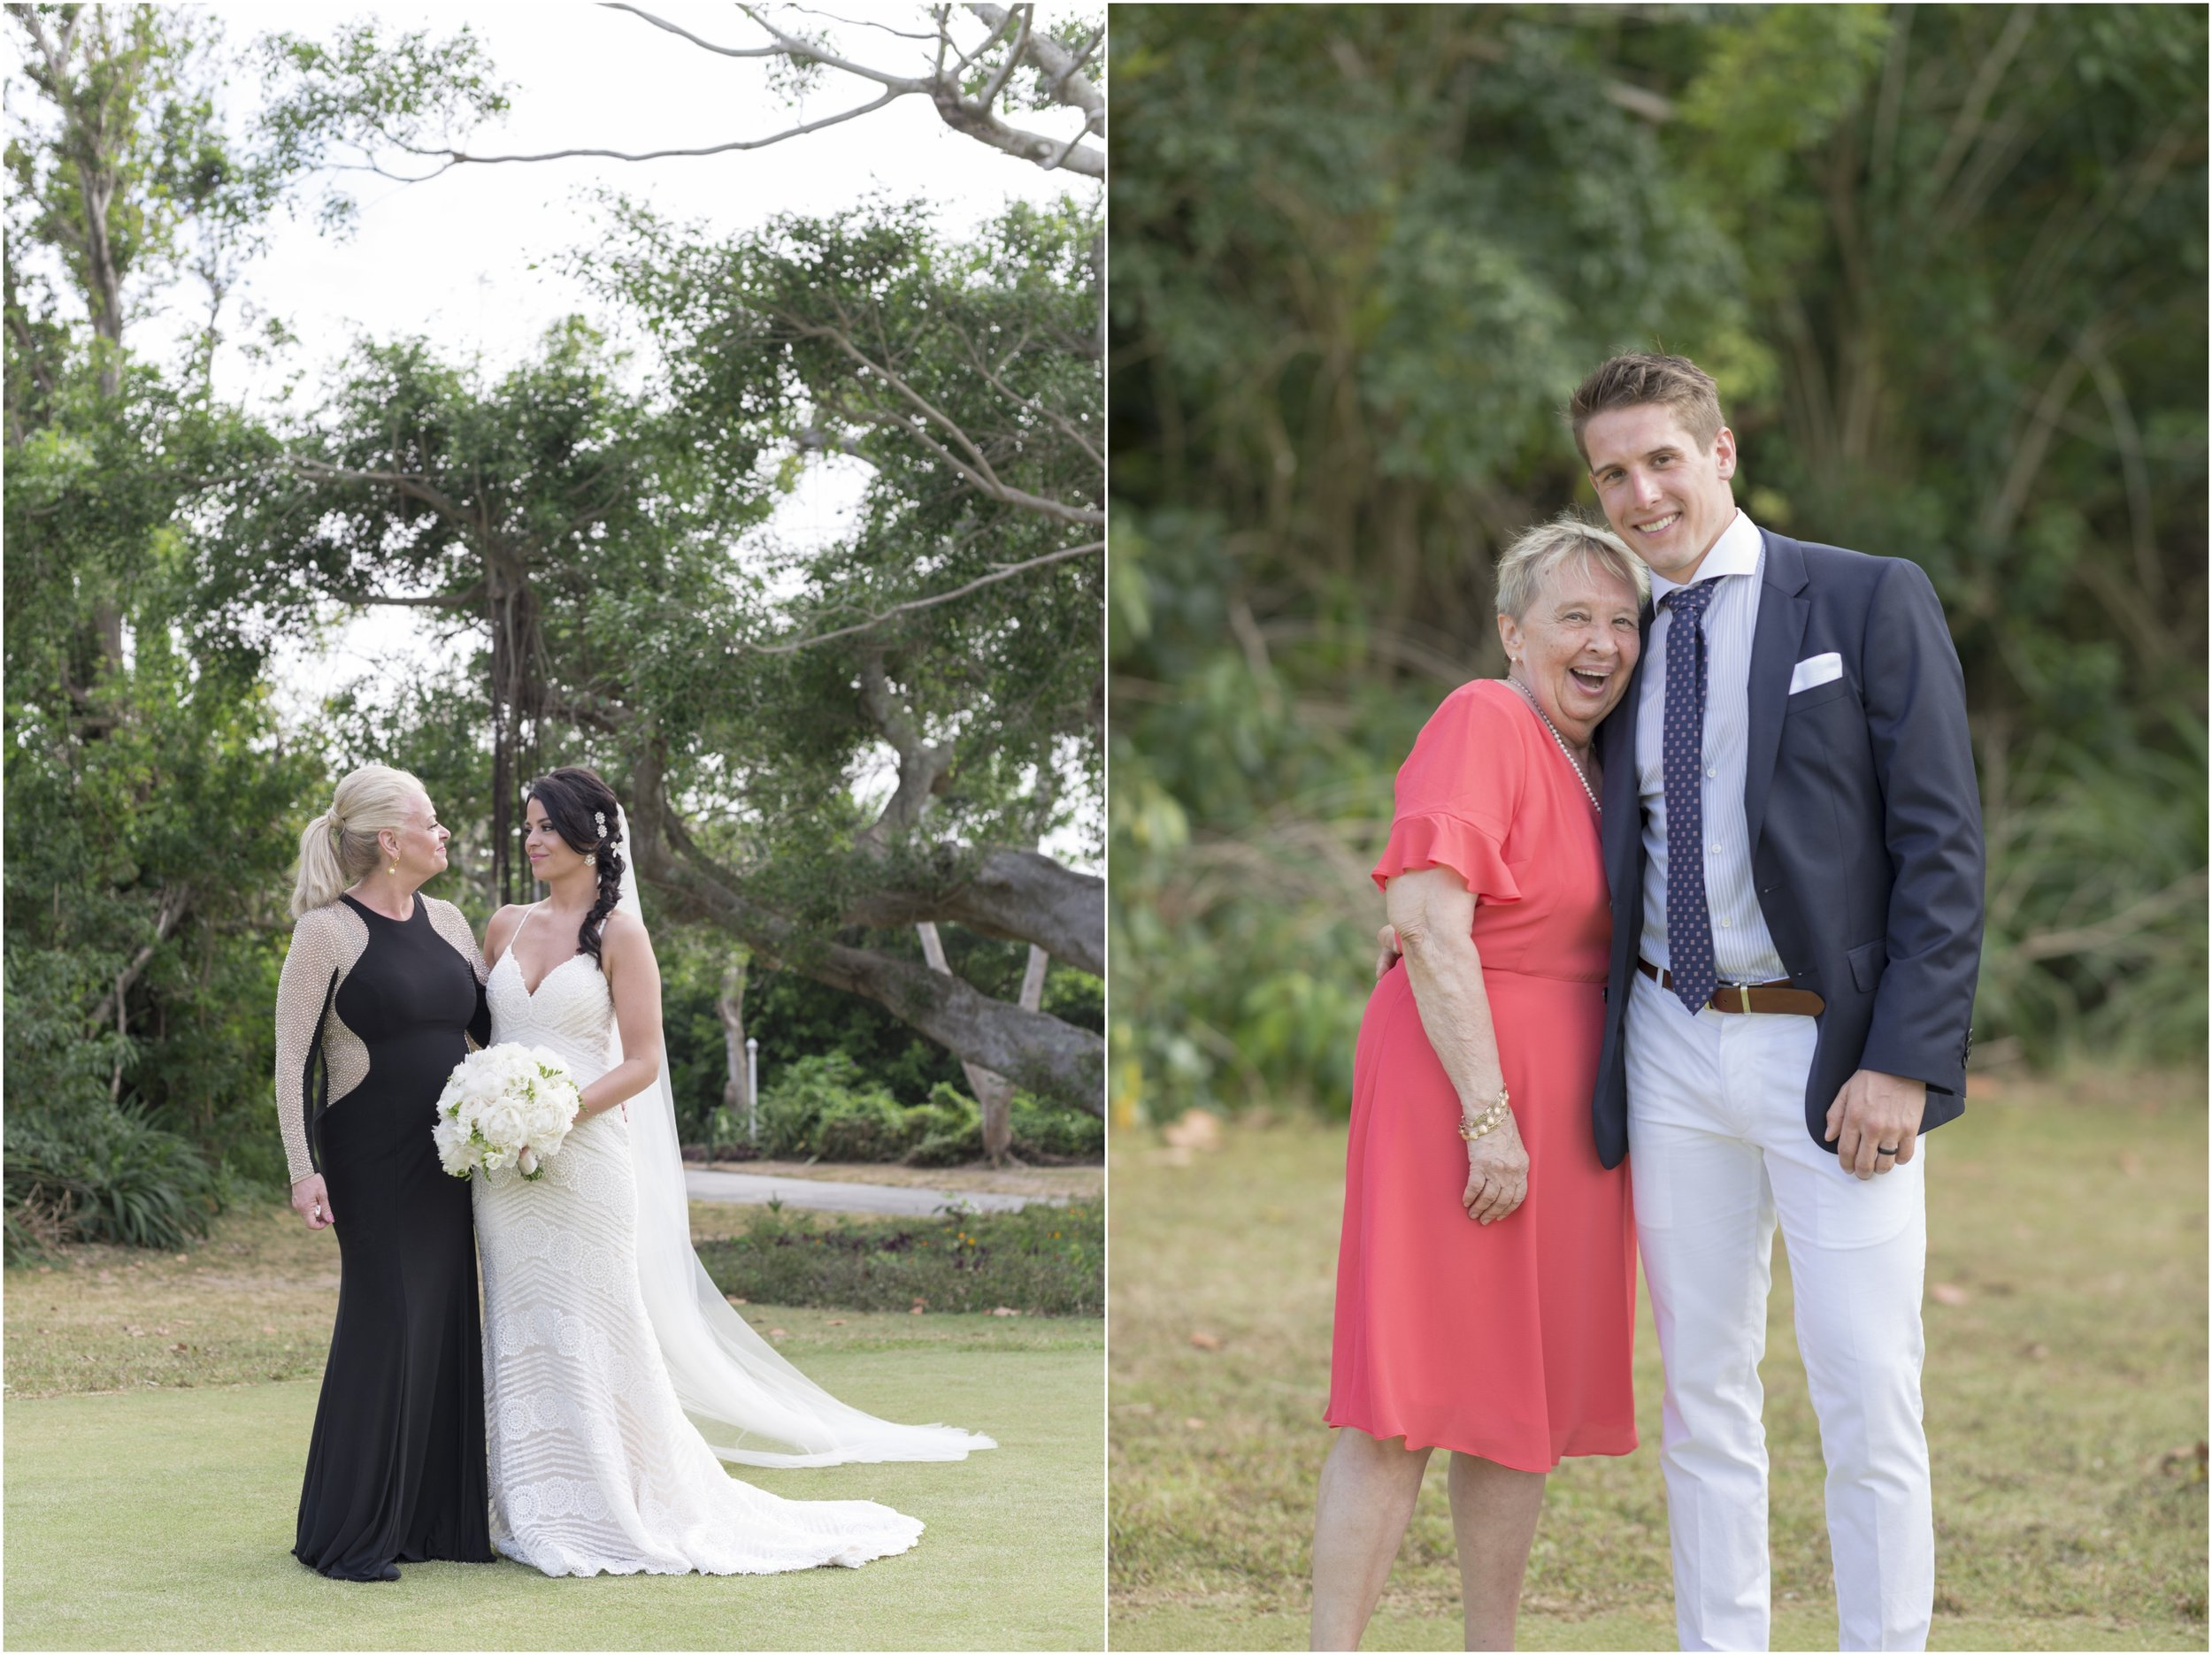 ©FianderFoto_Alyse_Stevie_Wedding_Bermuda_31.jpg